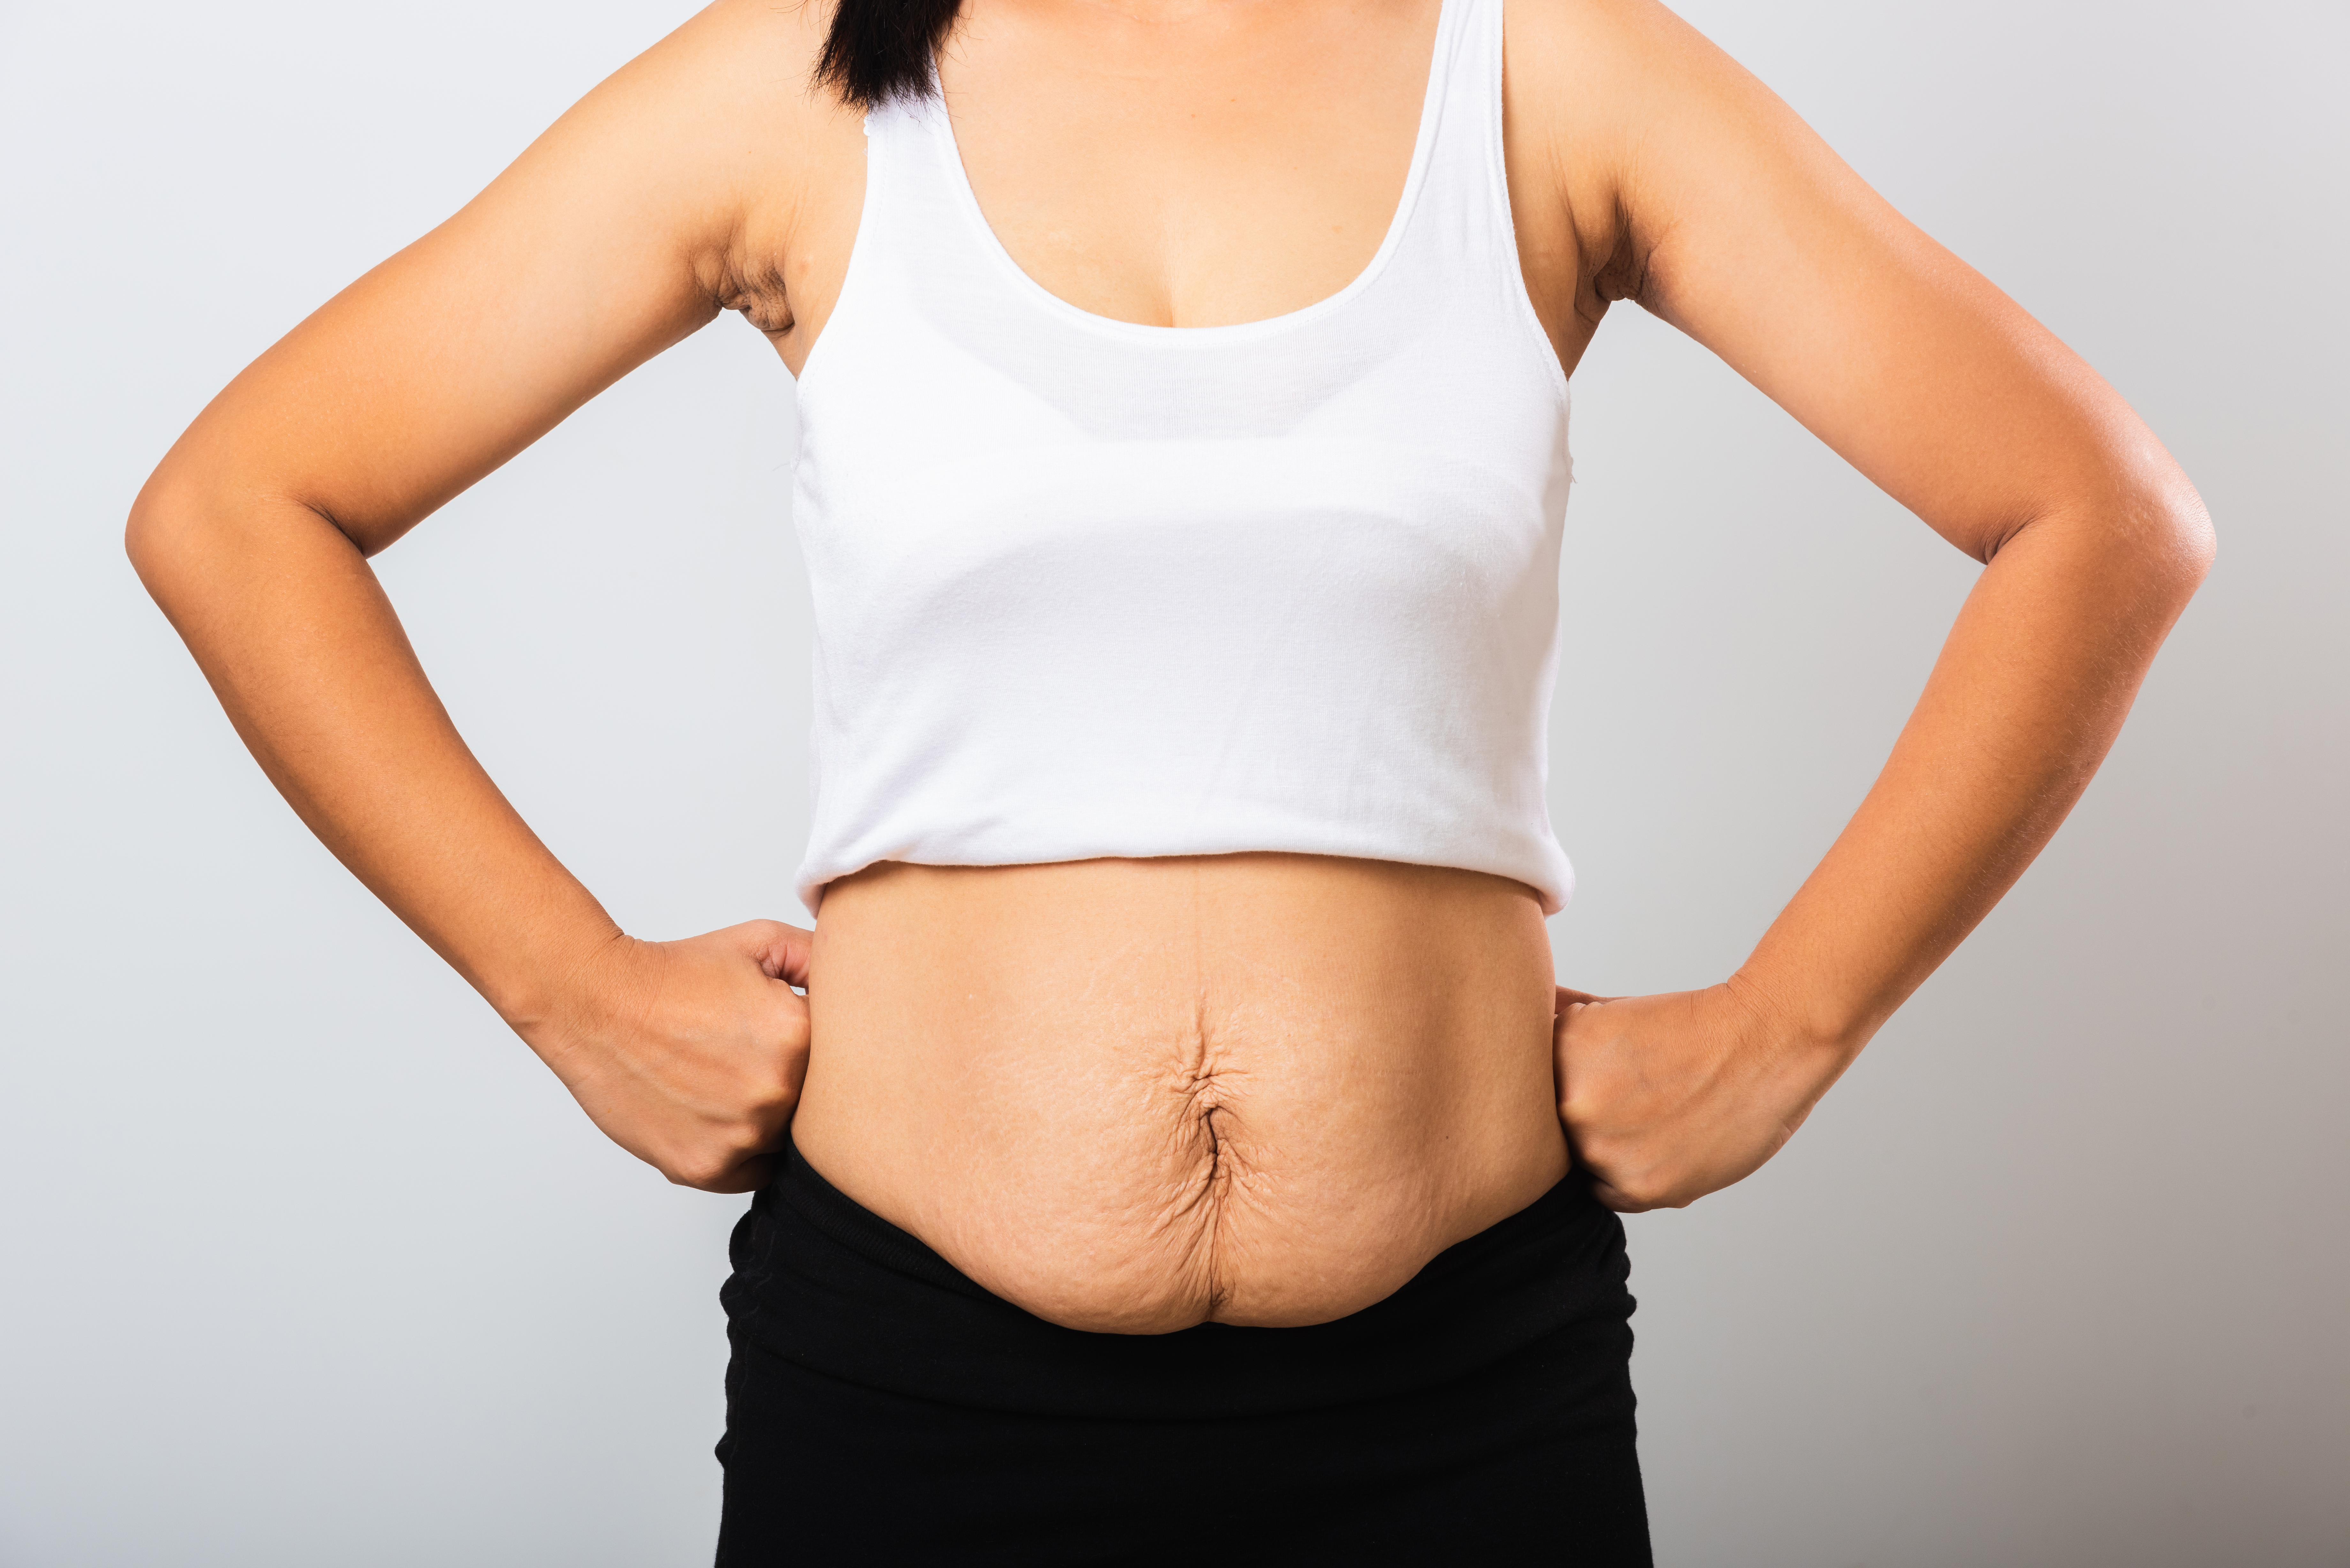 New mother using laser lipo to help with weight loss after pregnancy